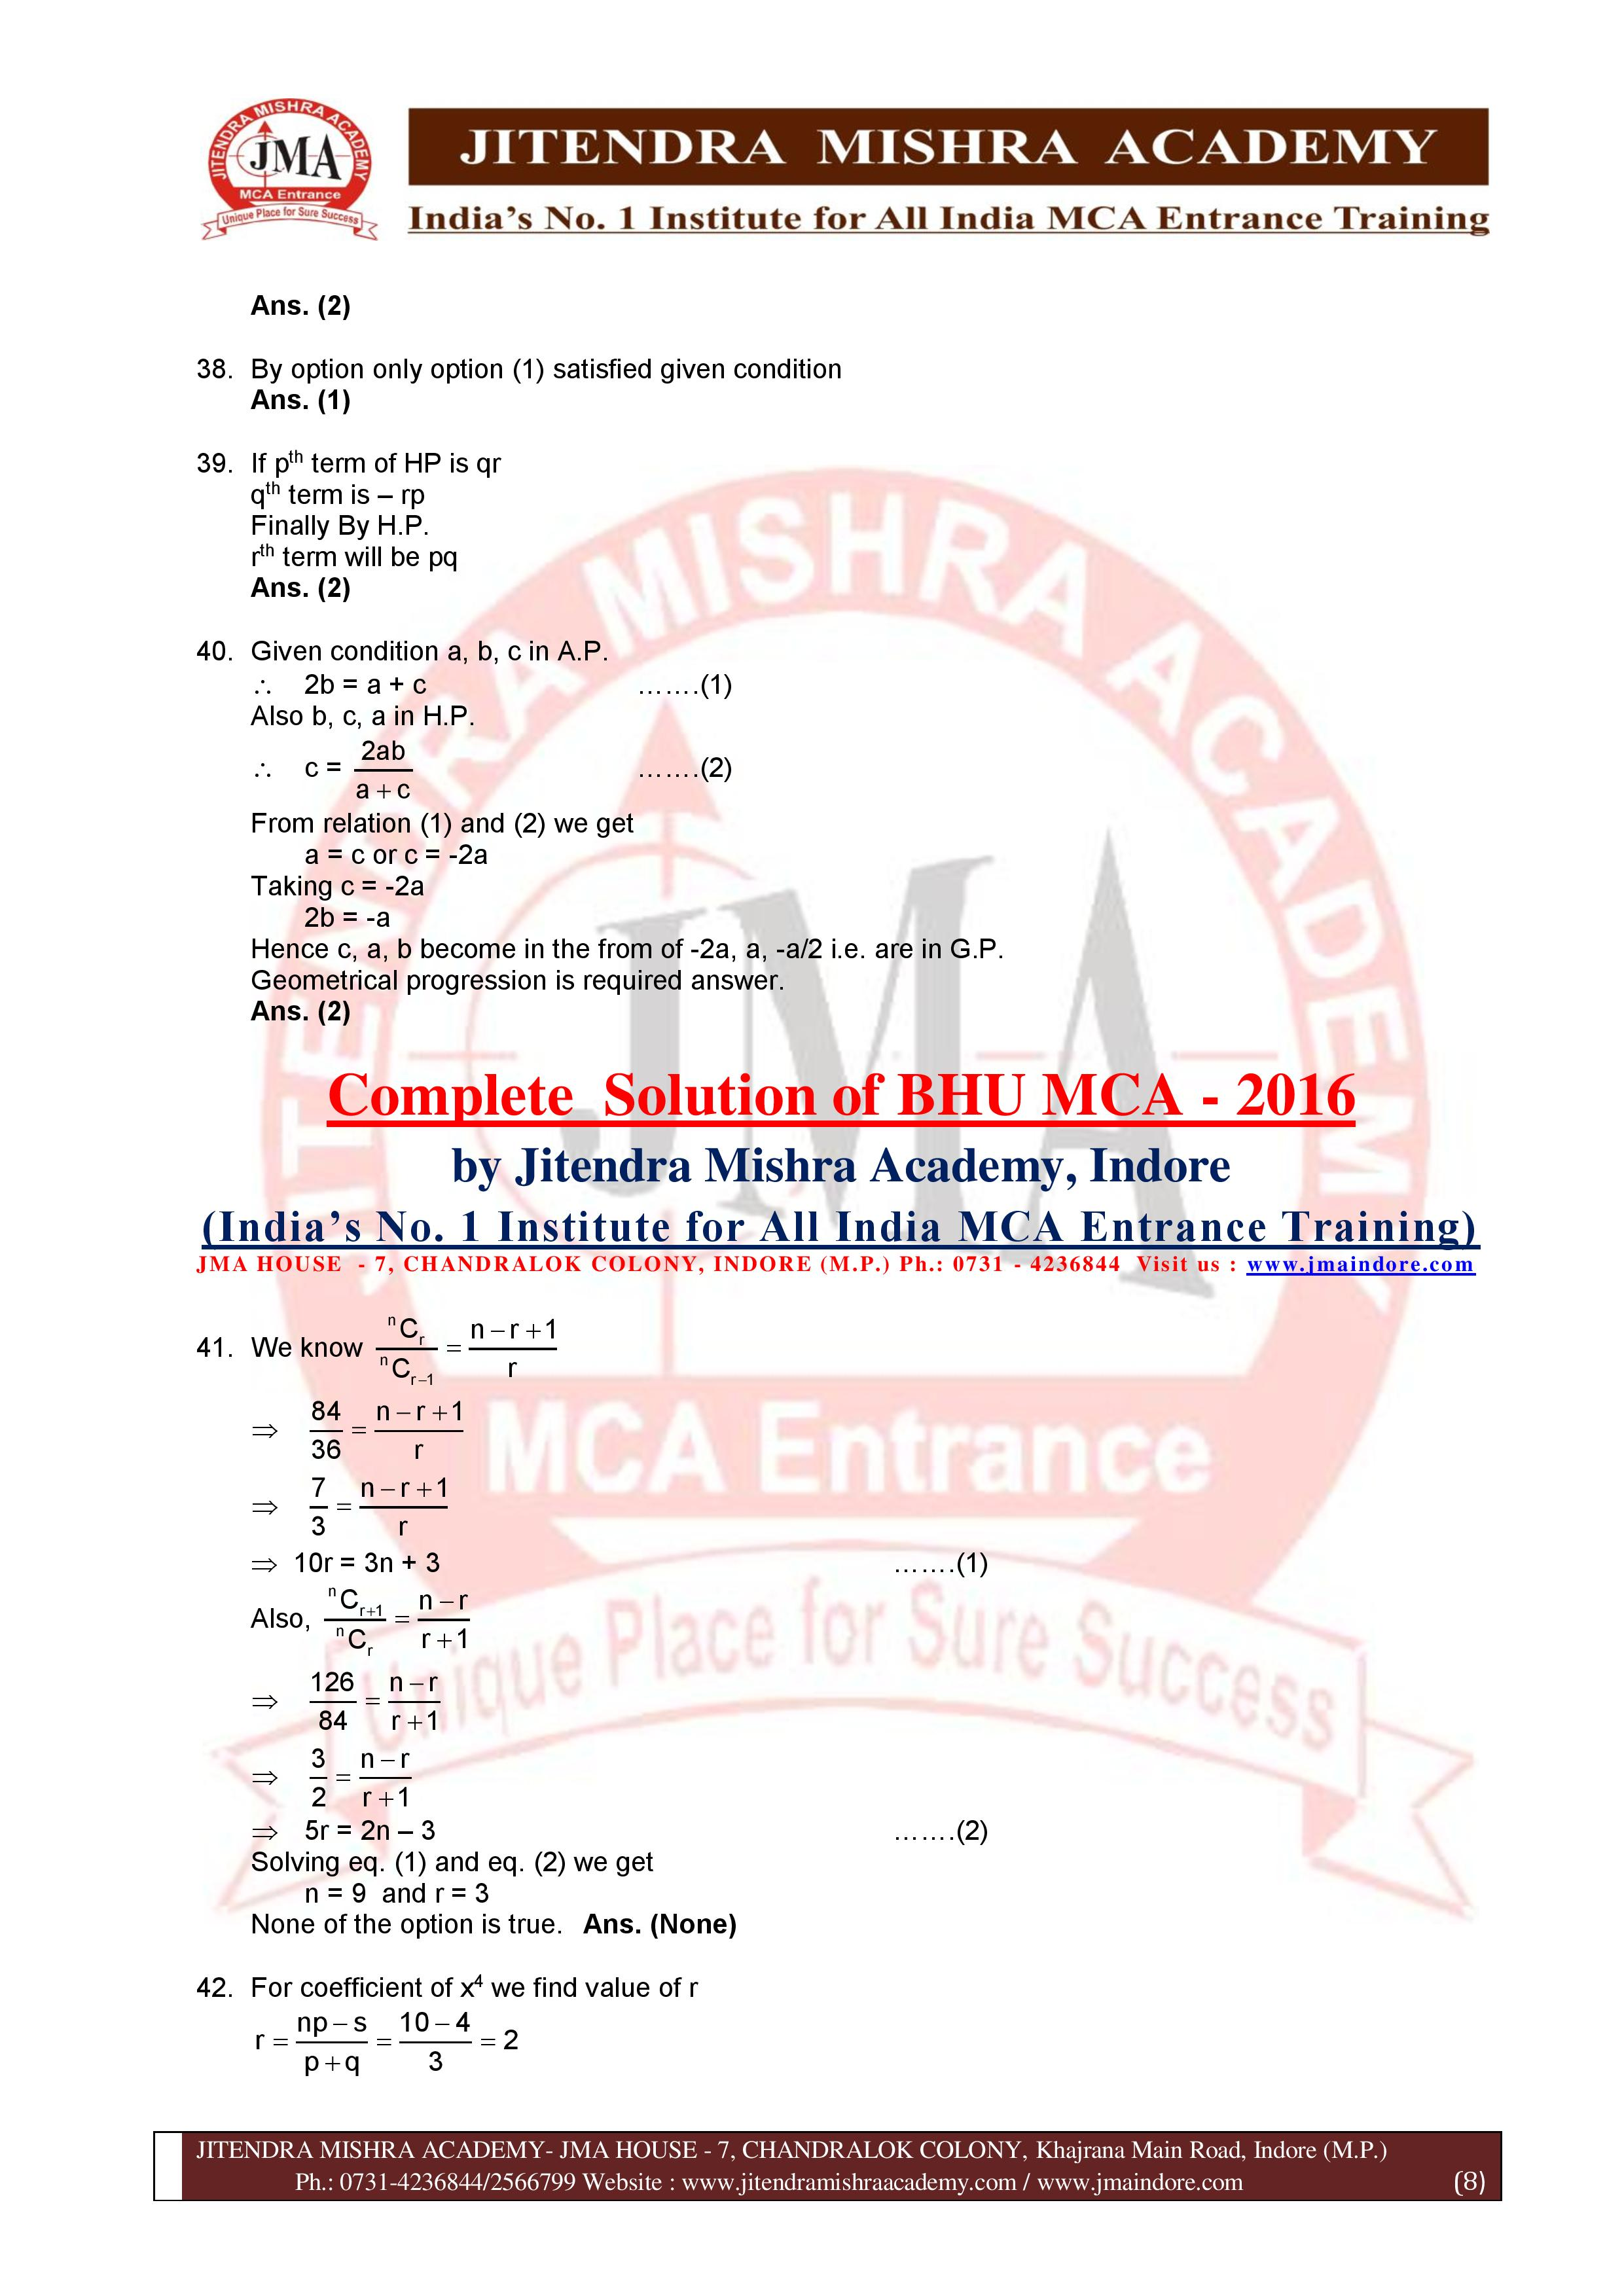 BHU 2016 SOLUTION (SET - 1)-page-008